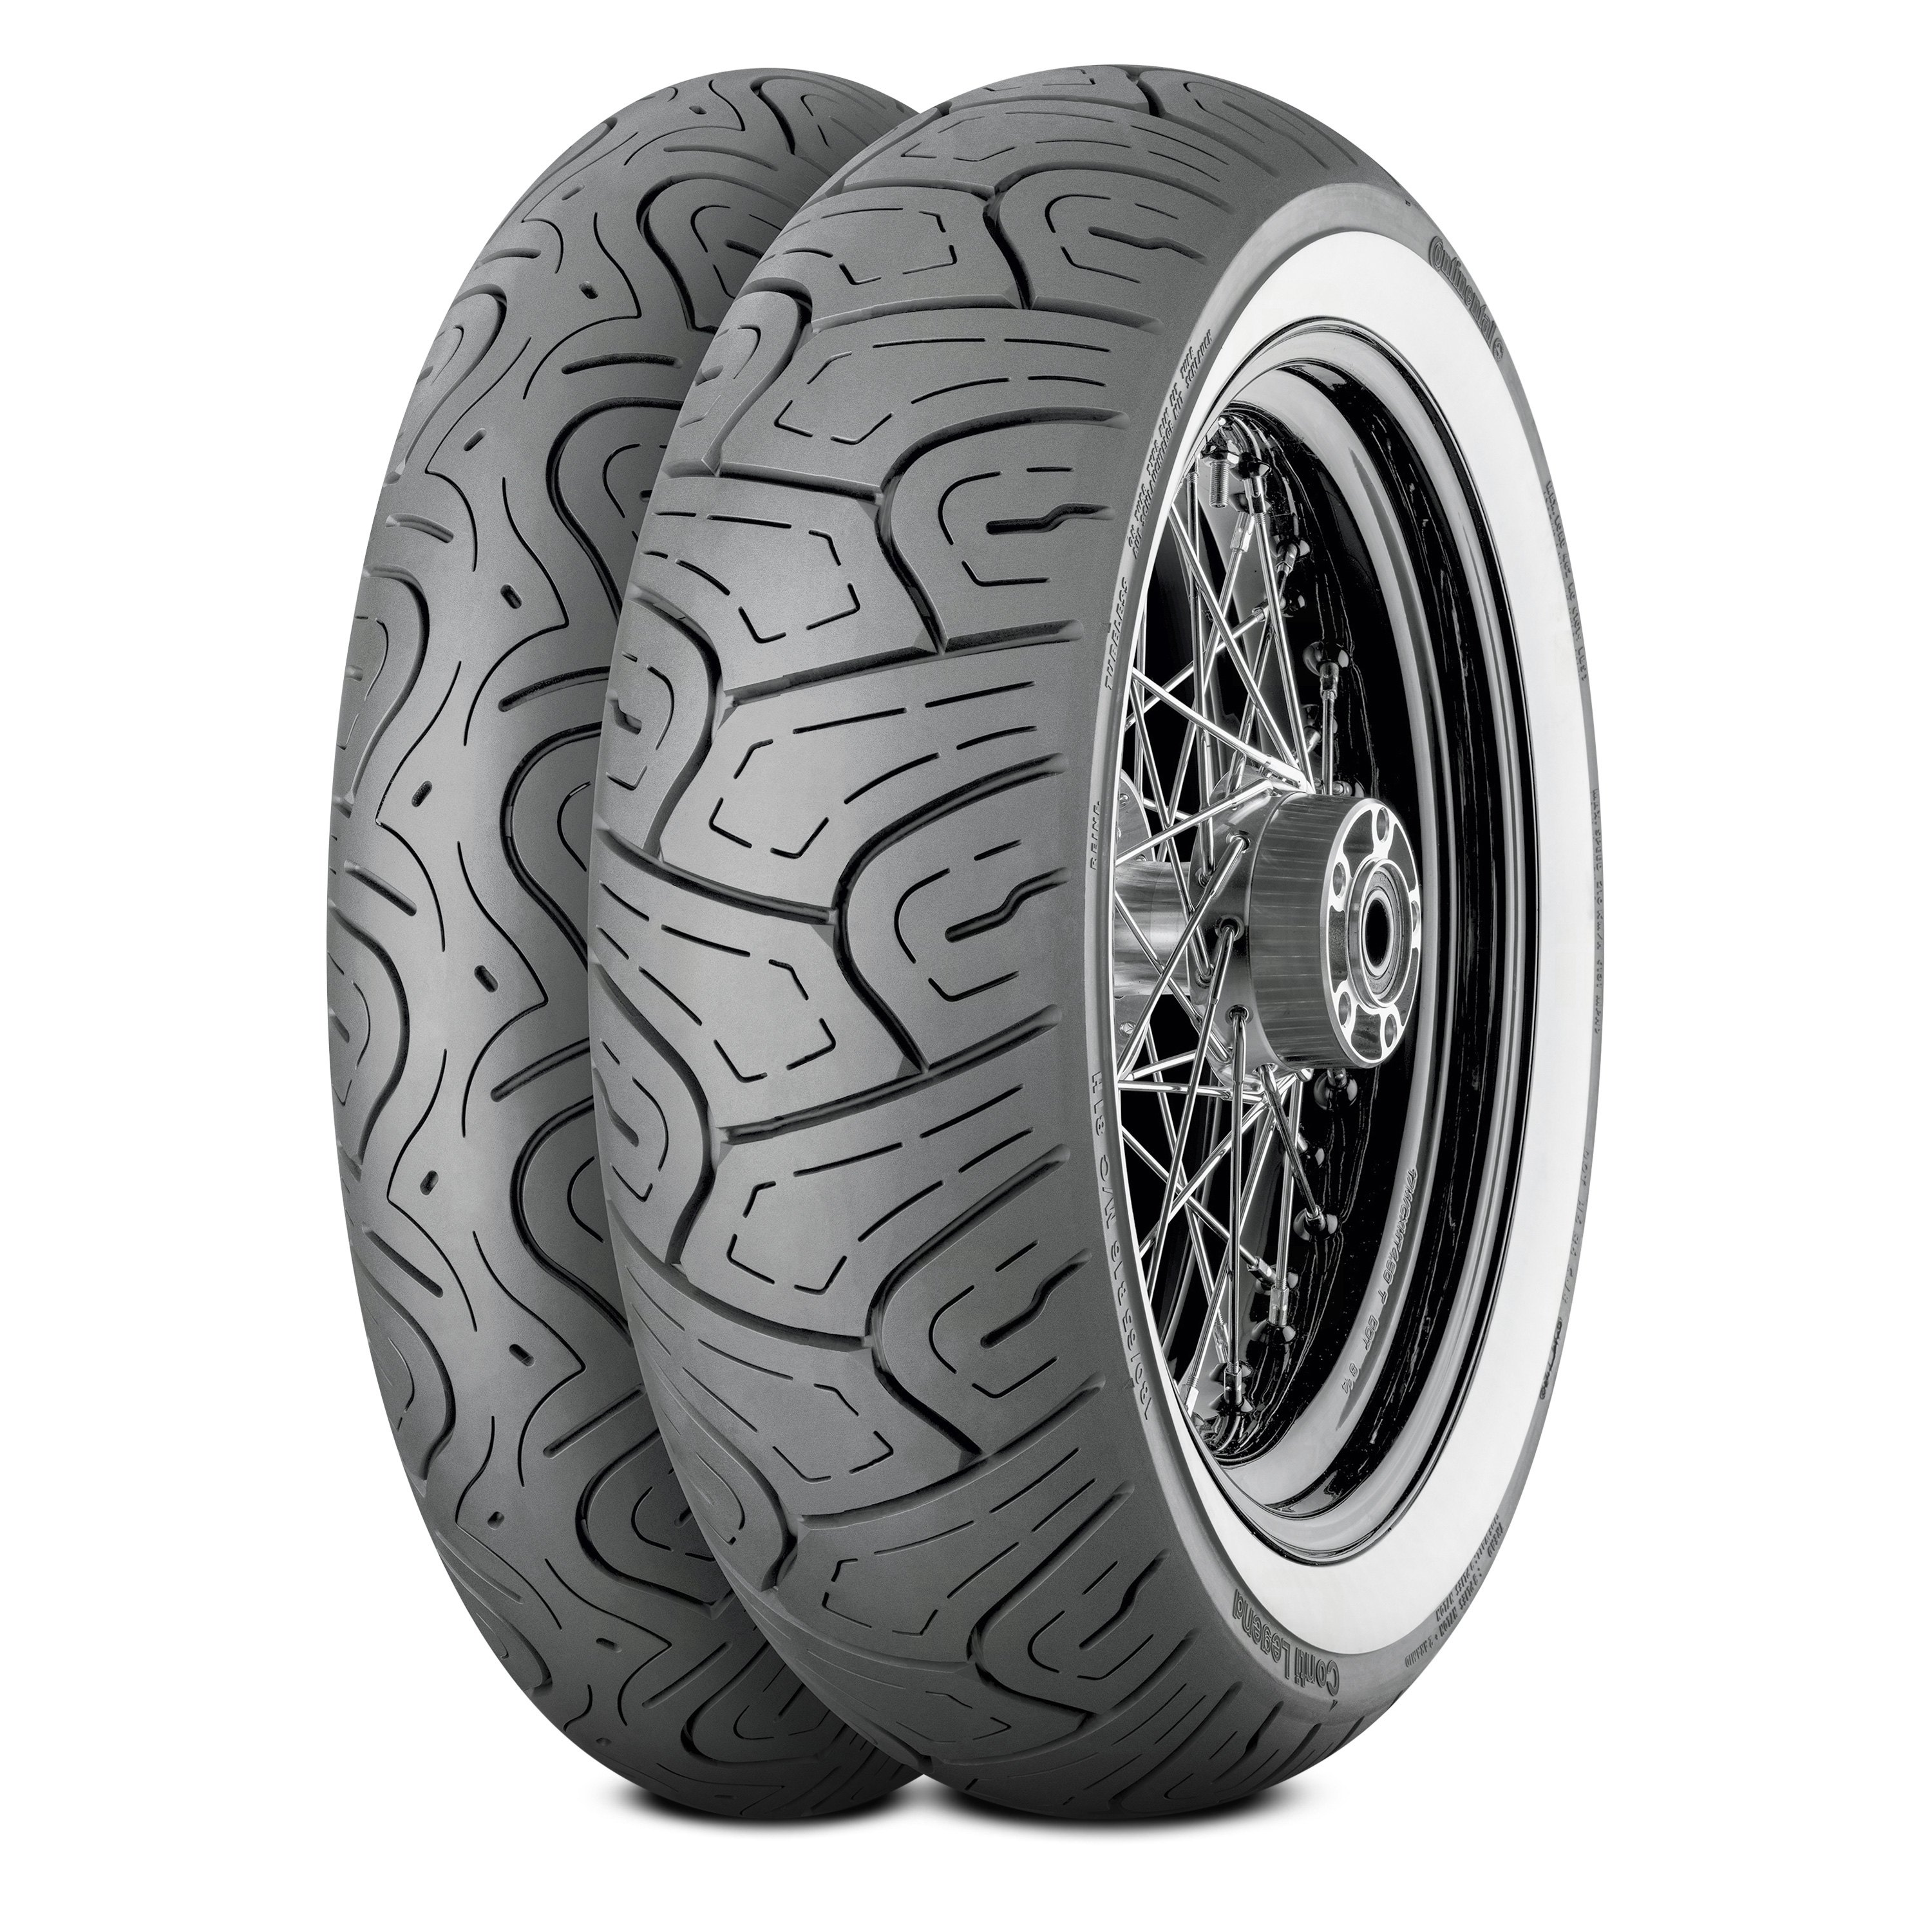 130//80-17 Continental Conti Legend Front Tire Wide Whitewall